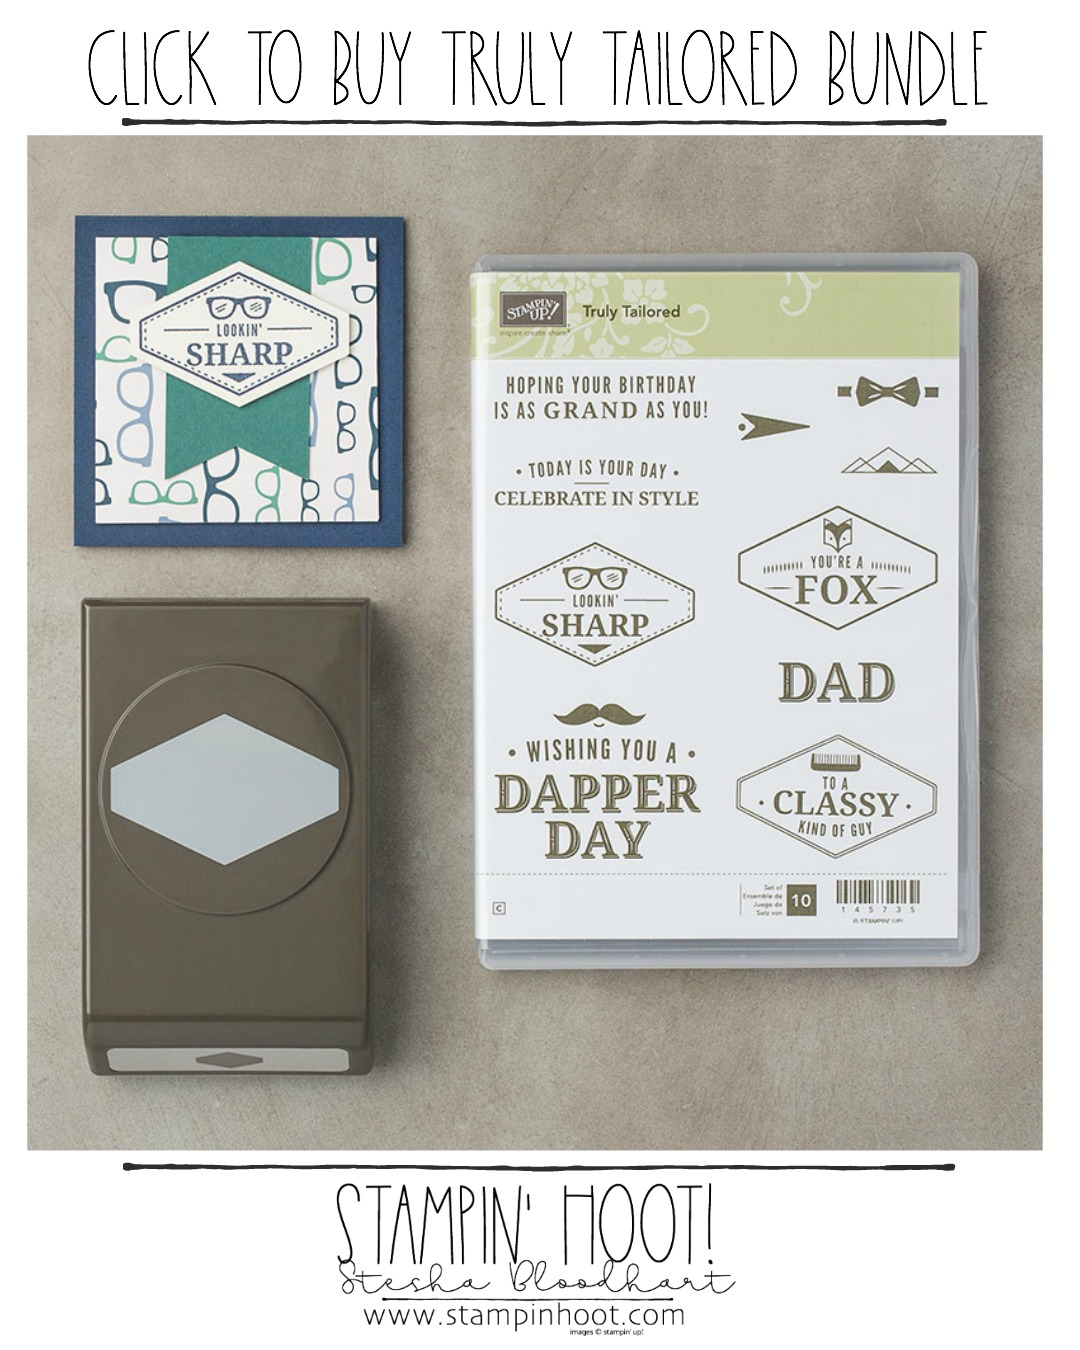 Click to Buy the Truly Tailored Bundle by Stampin' Up! from Stampin' Hoot! Online Store. Stesha Bloodhart #steshabloodhart #stampinhoot